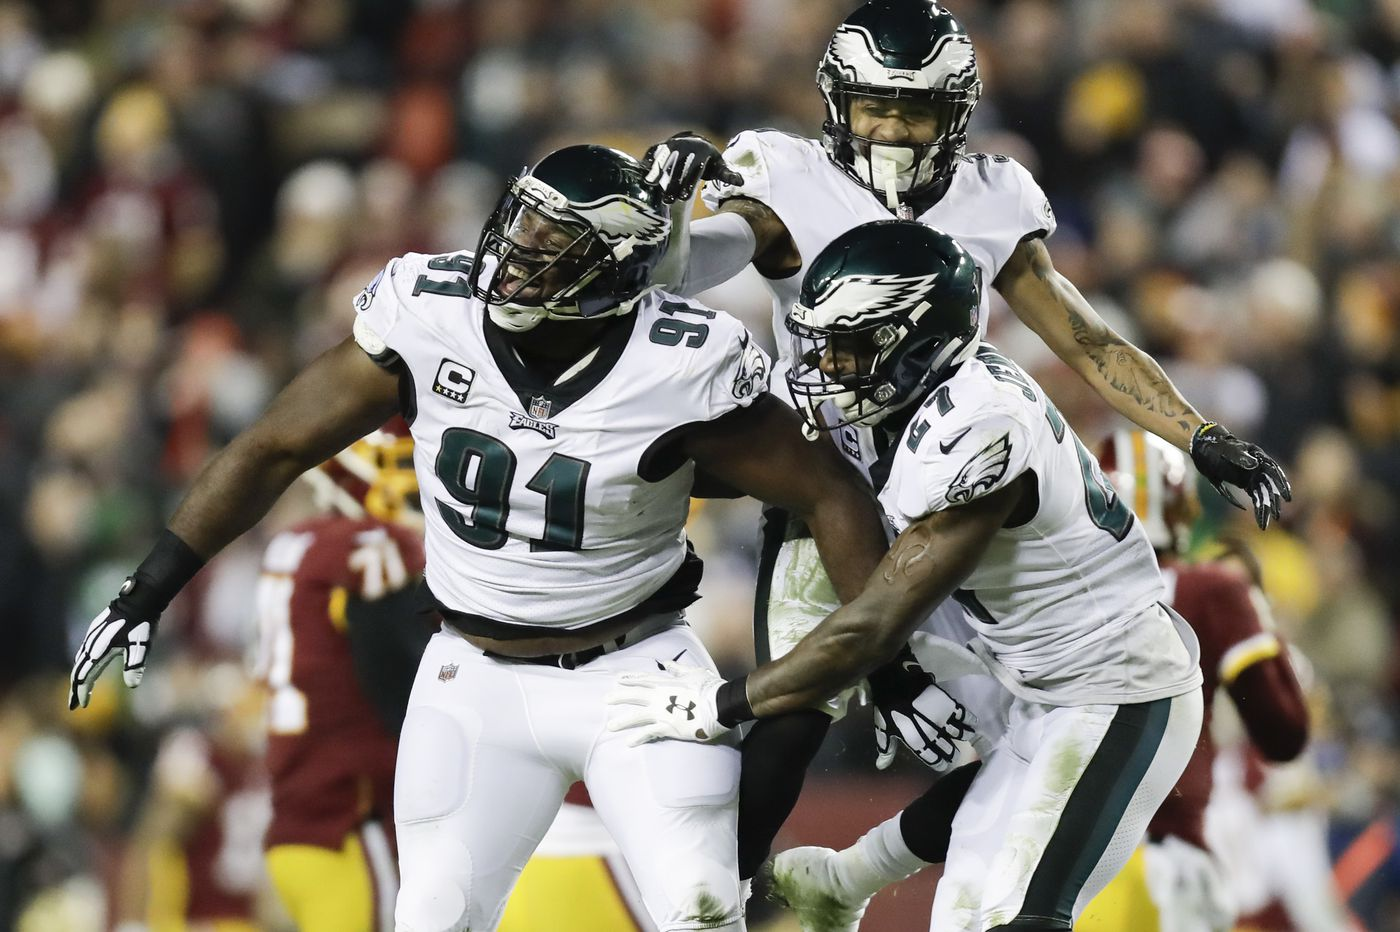 The Eagles are entering the NFL playoffs relaxed, experienced and with nothing to lose | Mike Sielski